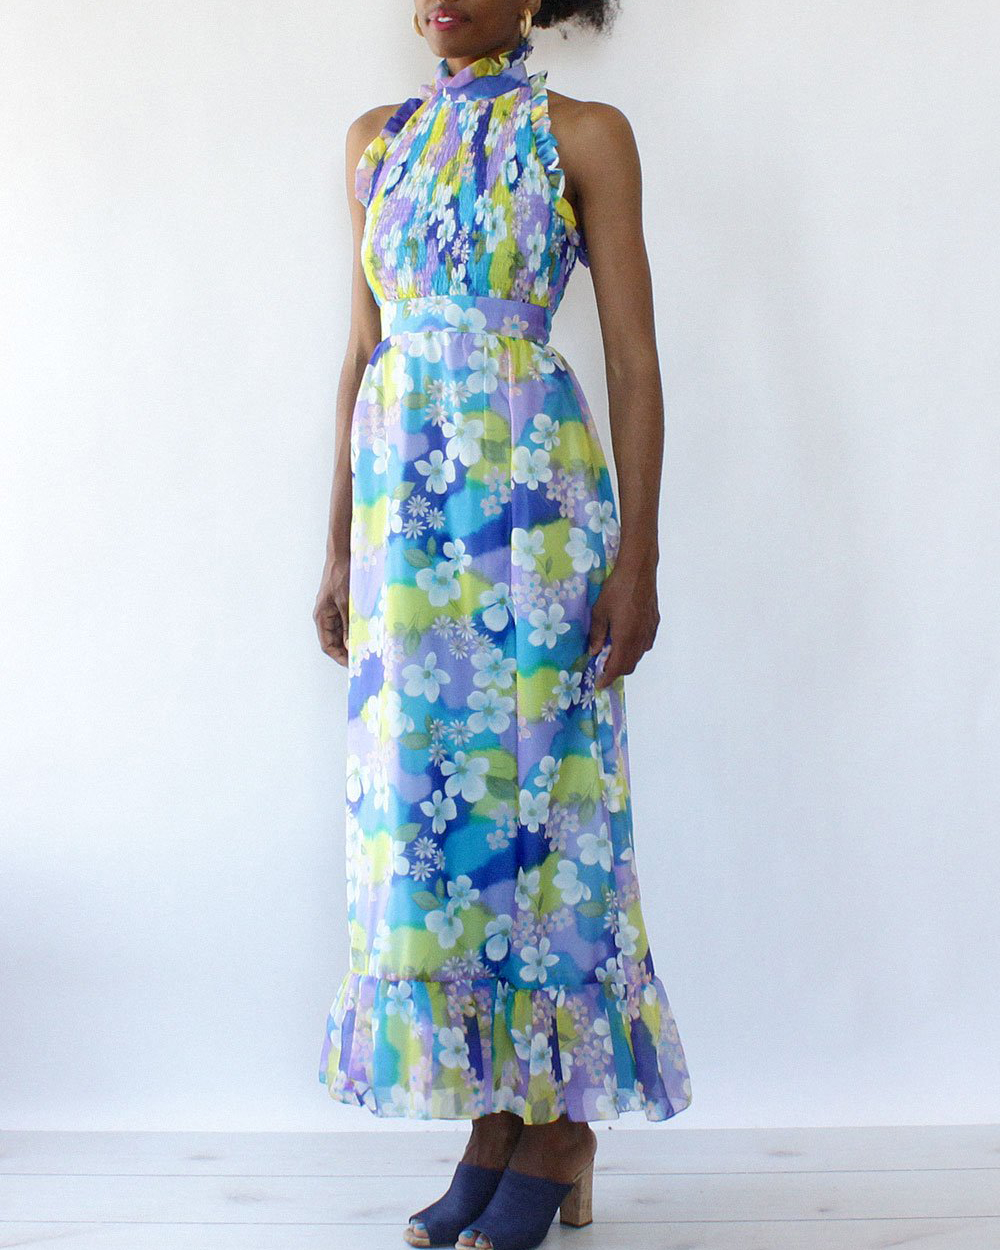 UNDER $100 - Some 1960s pop floral romance is always good for summer at just $68